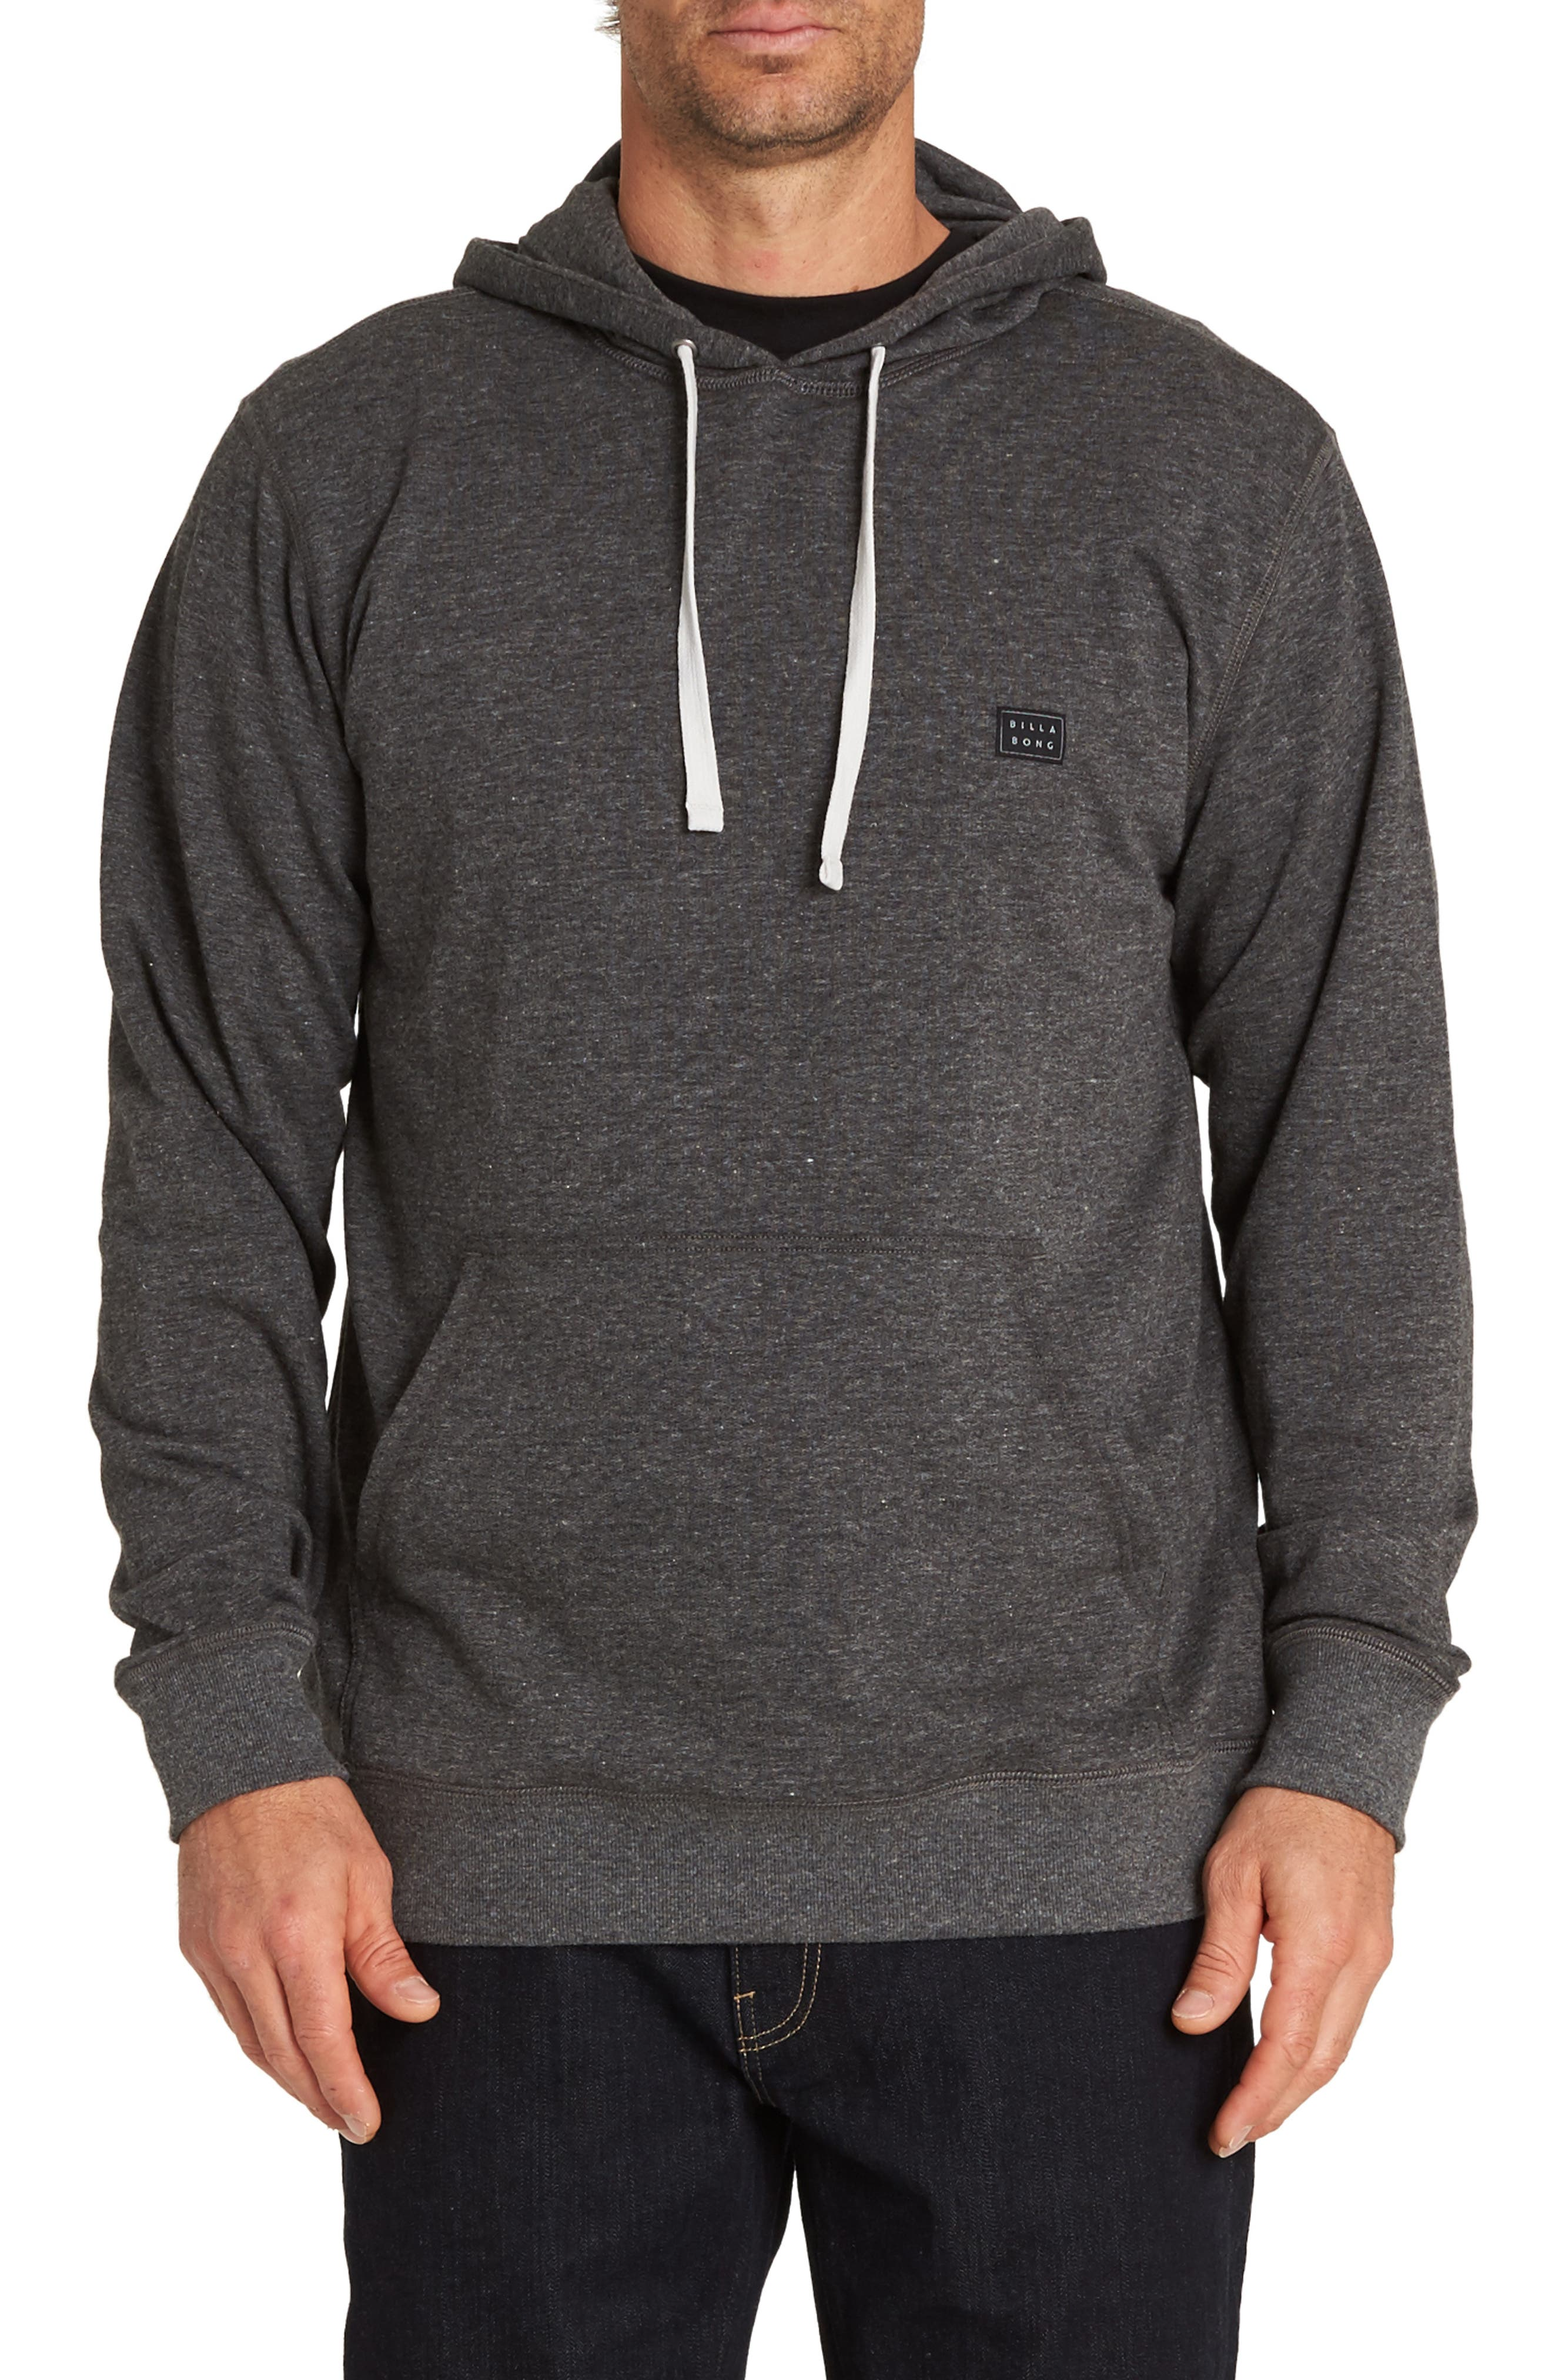 All Day Hoodie,                         Main,                         color, 001